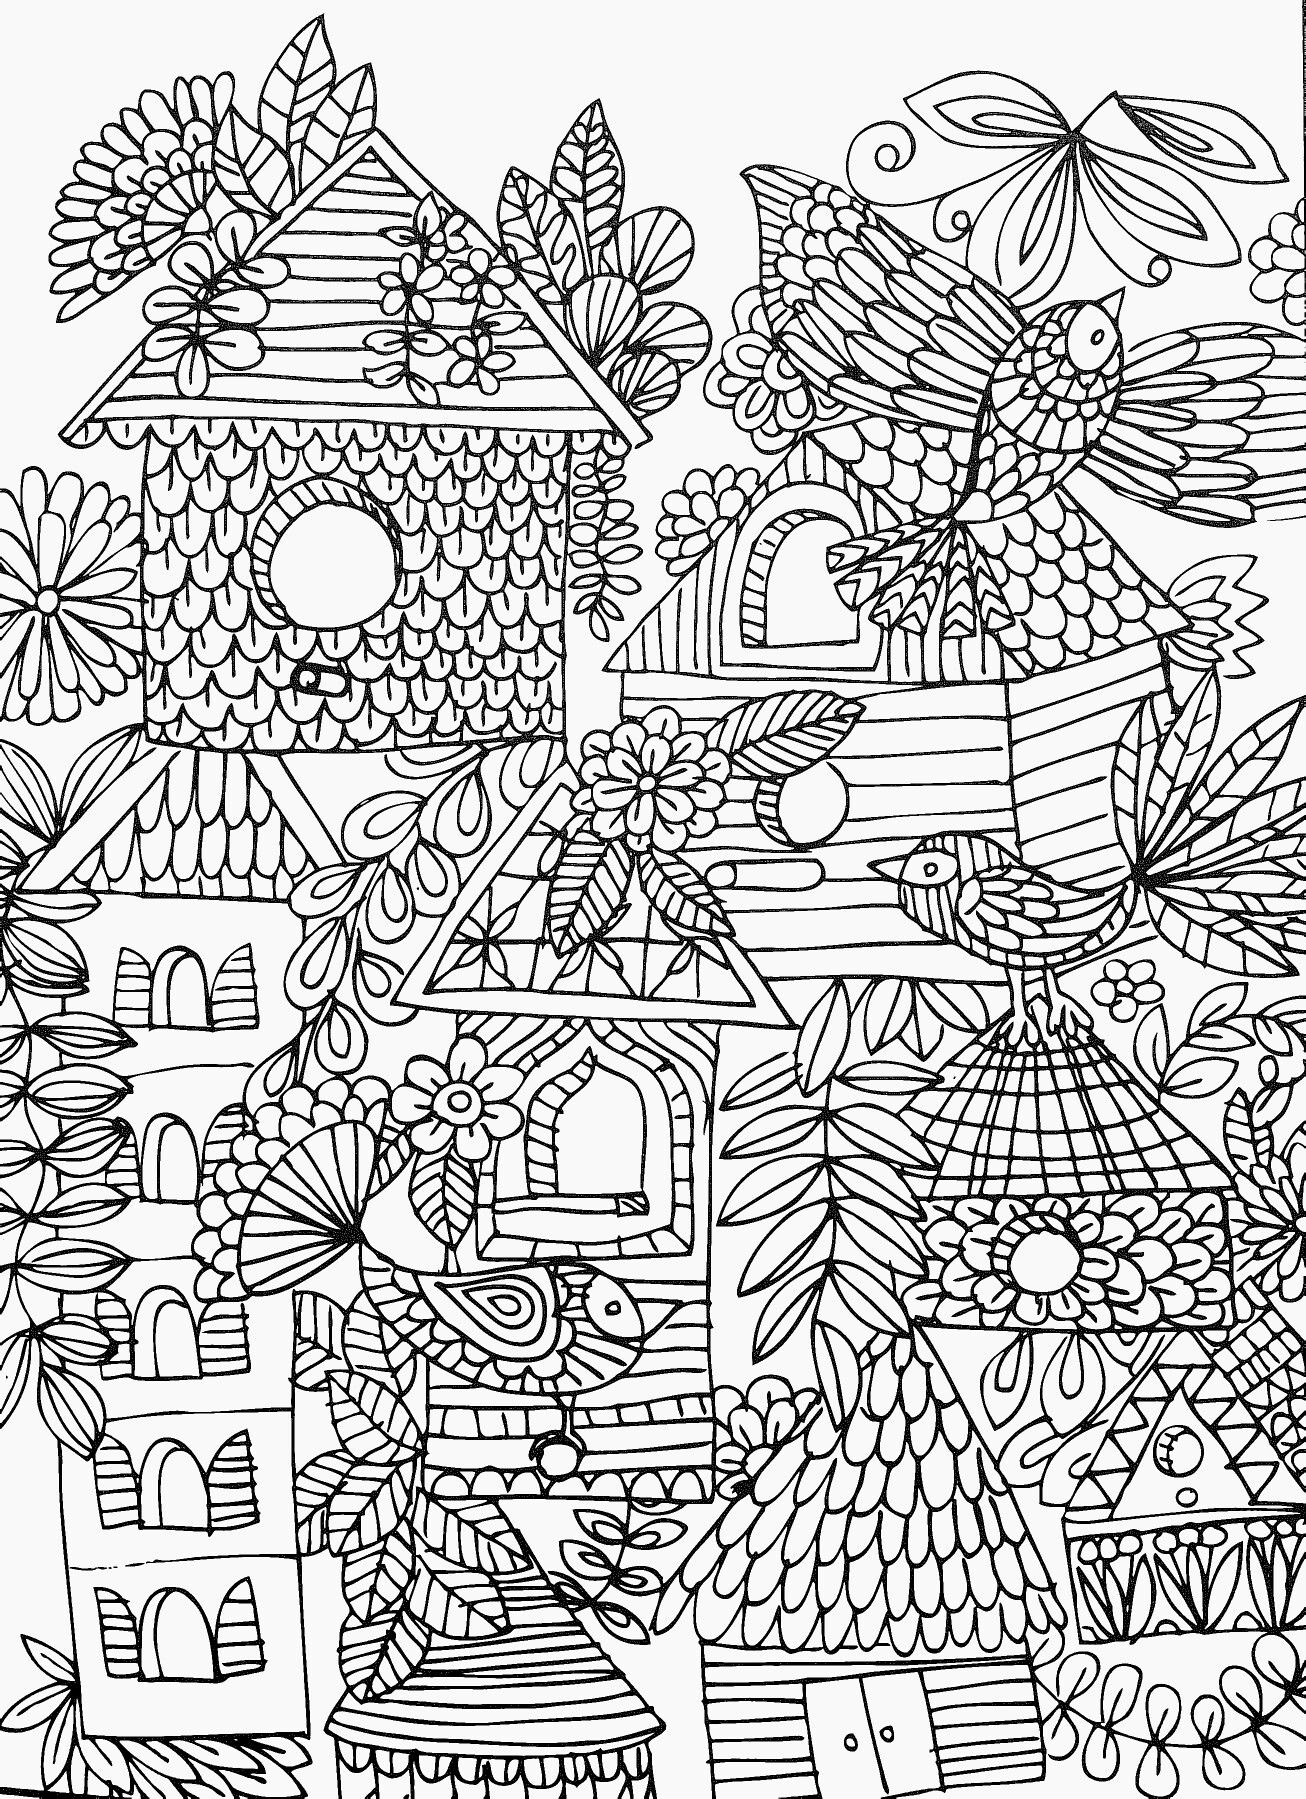 19 Colorama Coloring Pages to Print Collection - Coloring ...